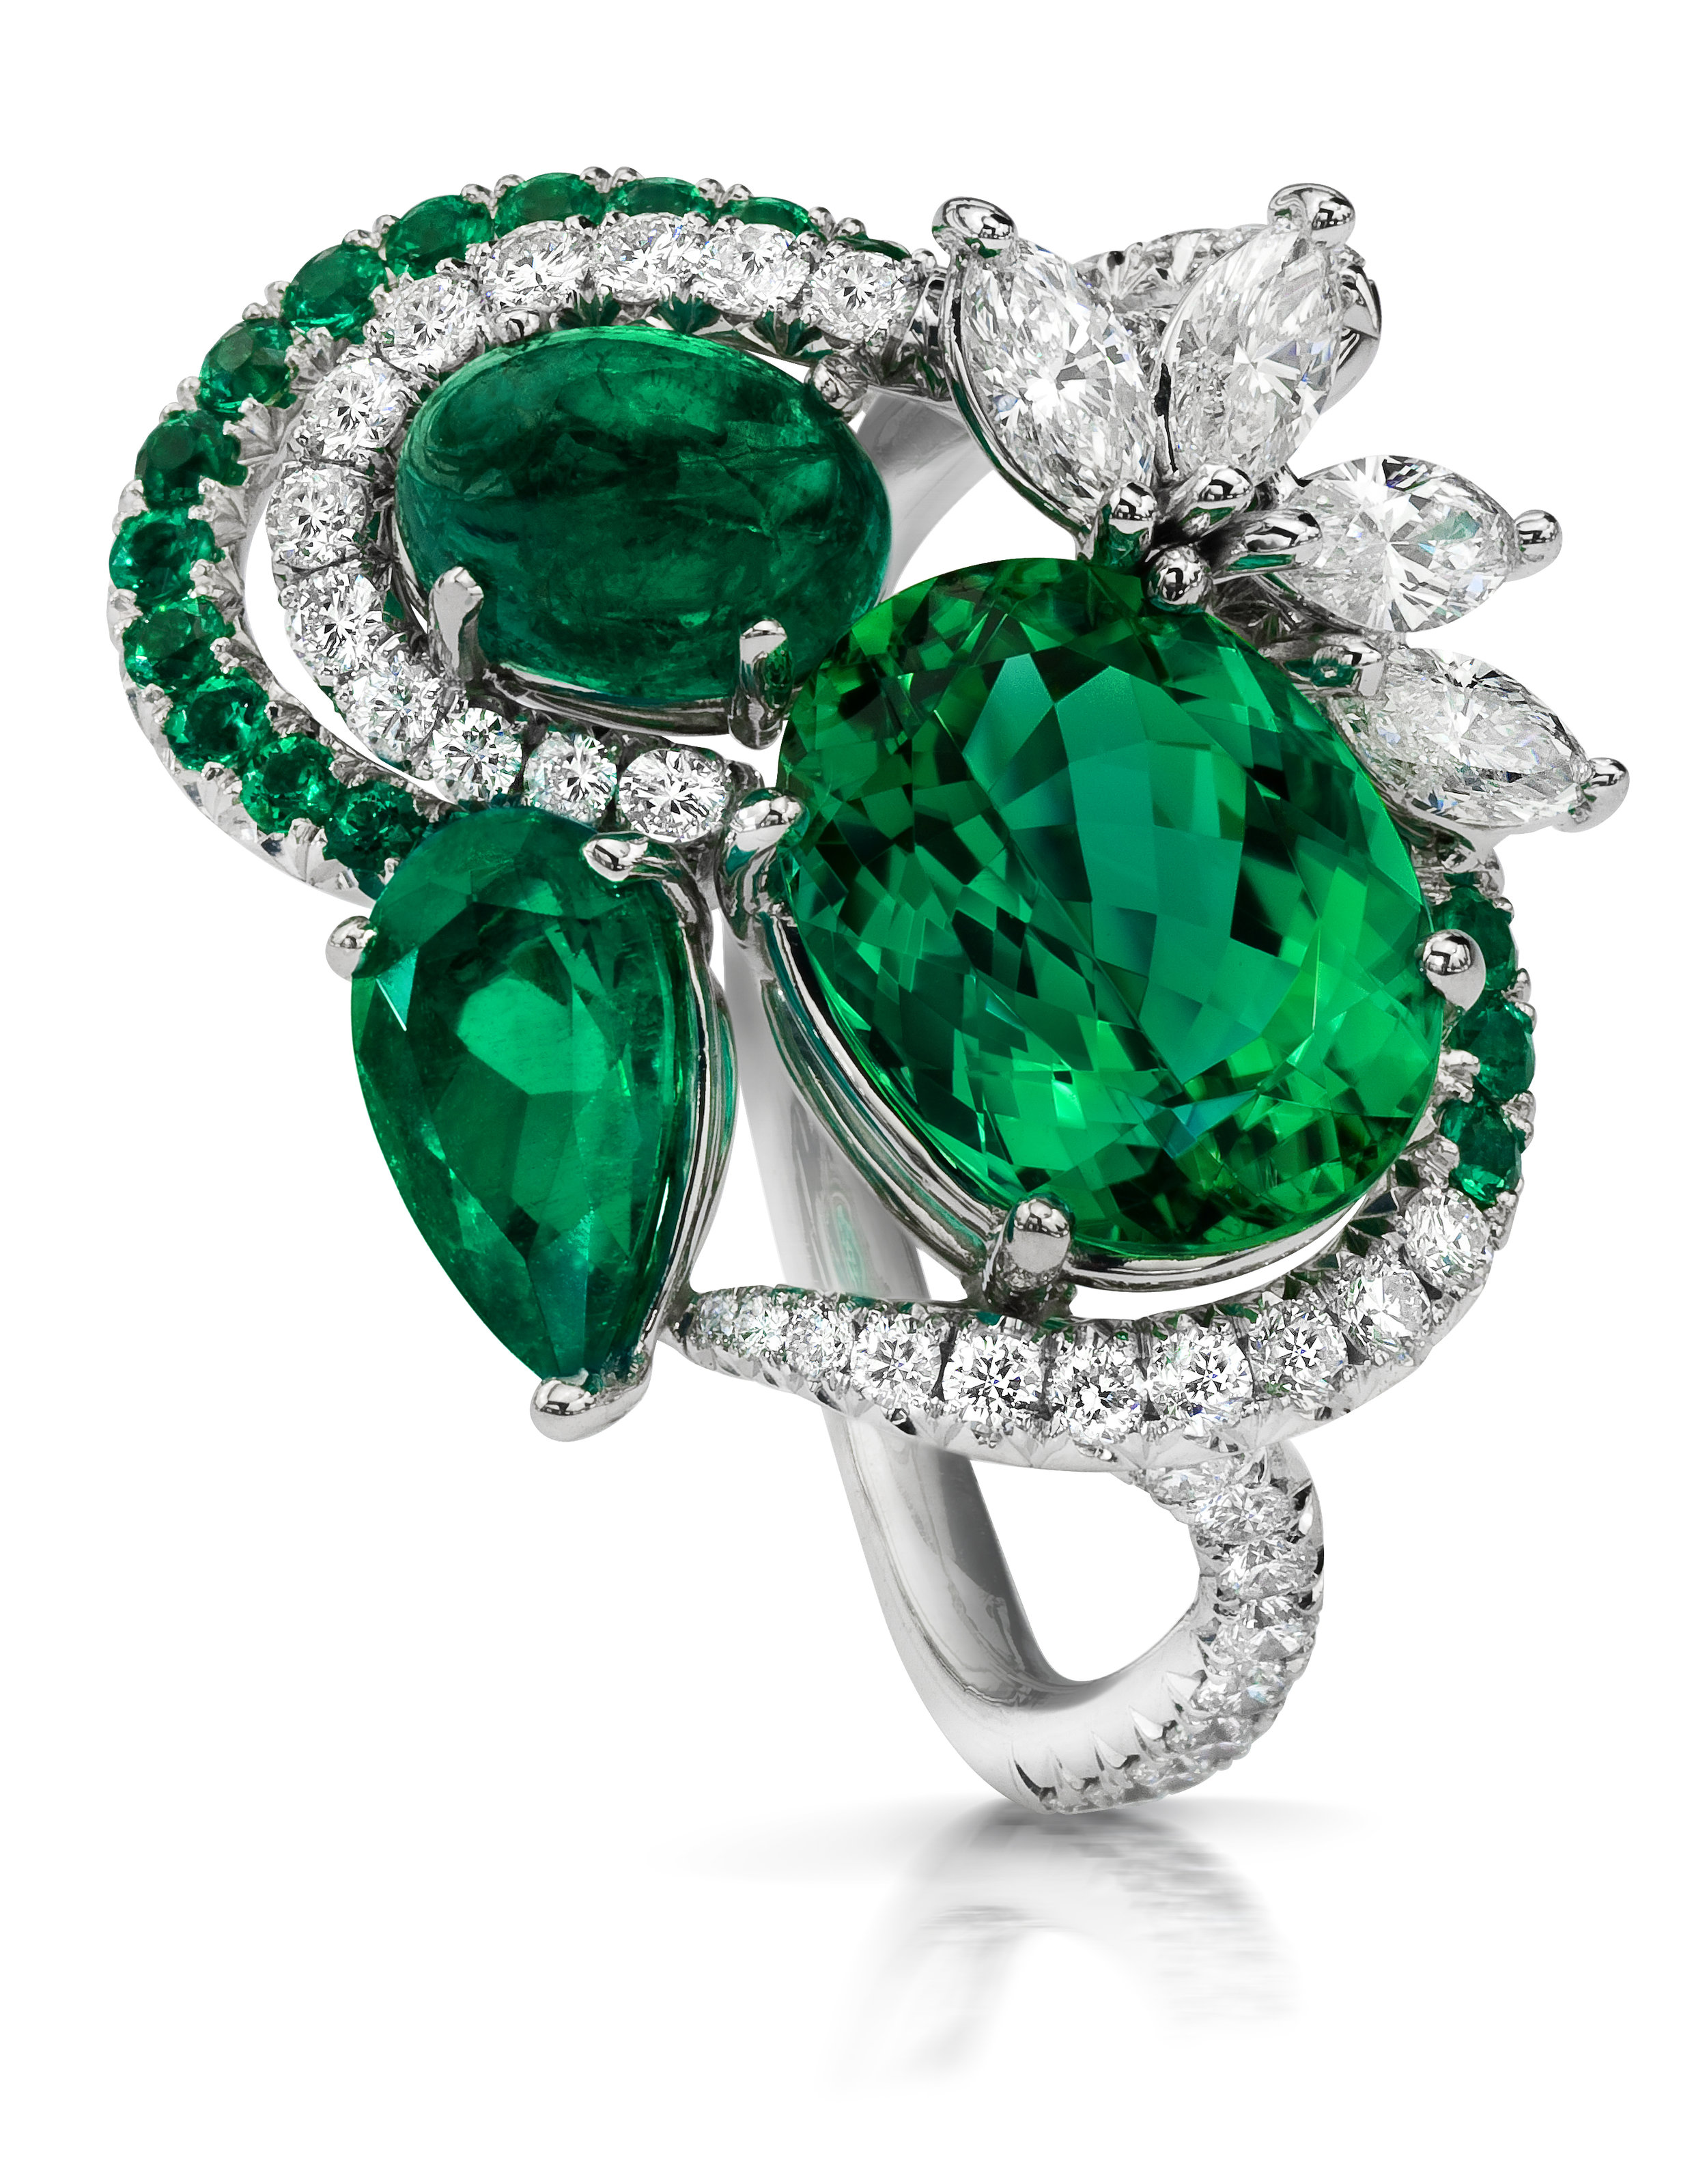 Oval-Pear-Emerald Ring.jpg